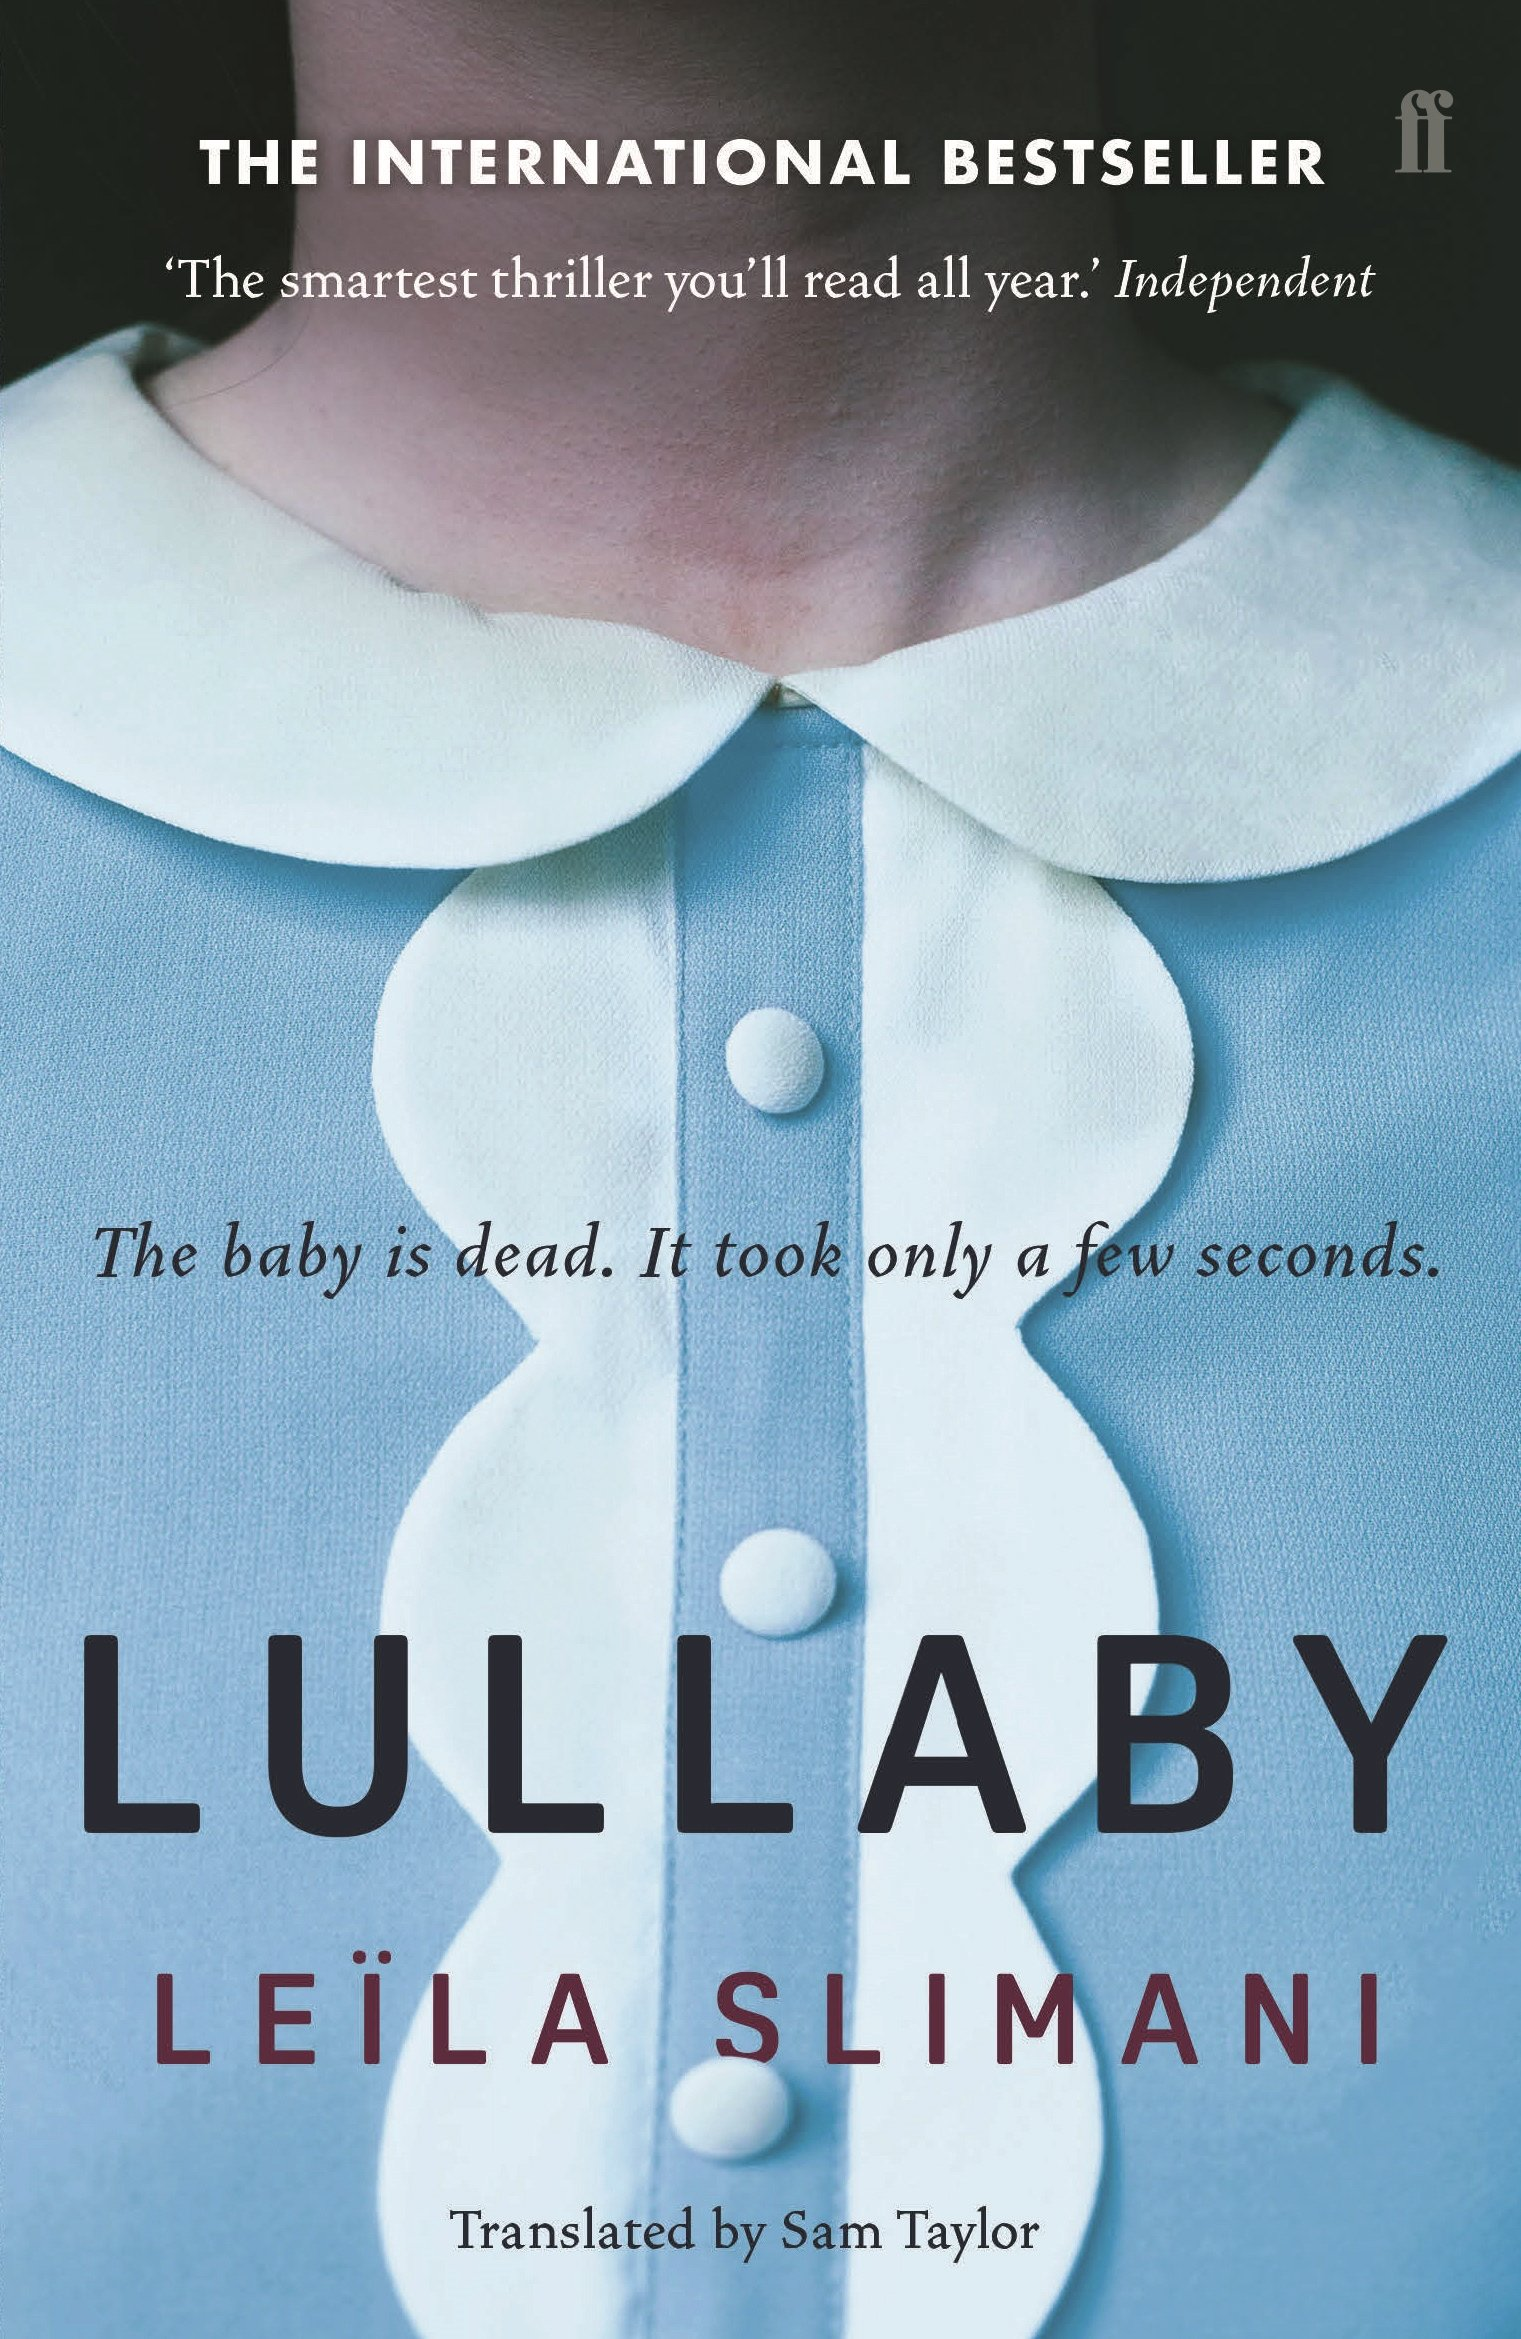 Lullaby: Amazon.co.uk: Slimani, Leïla: 9780571337545: Books